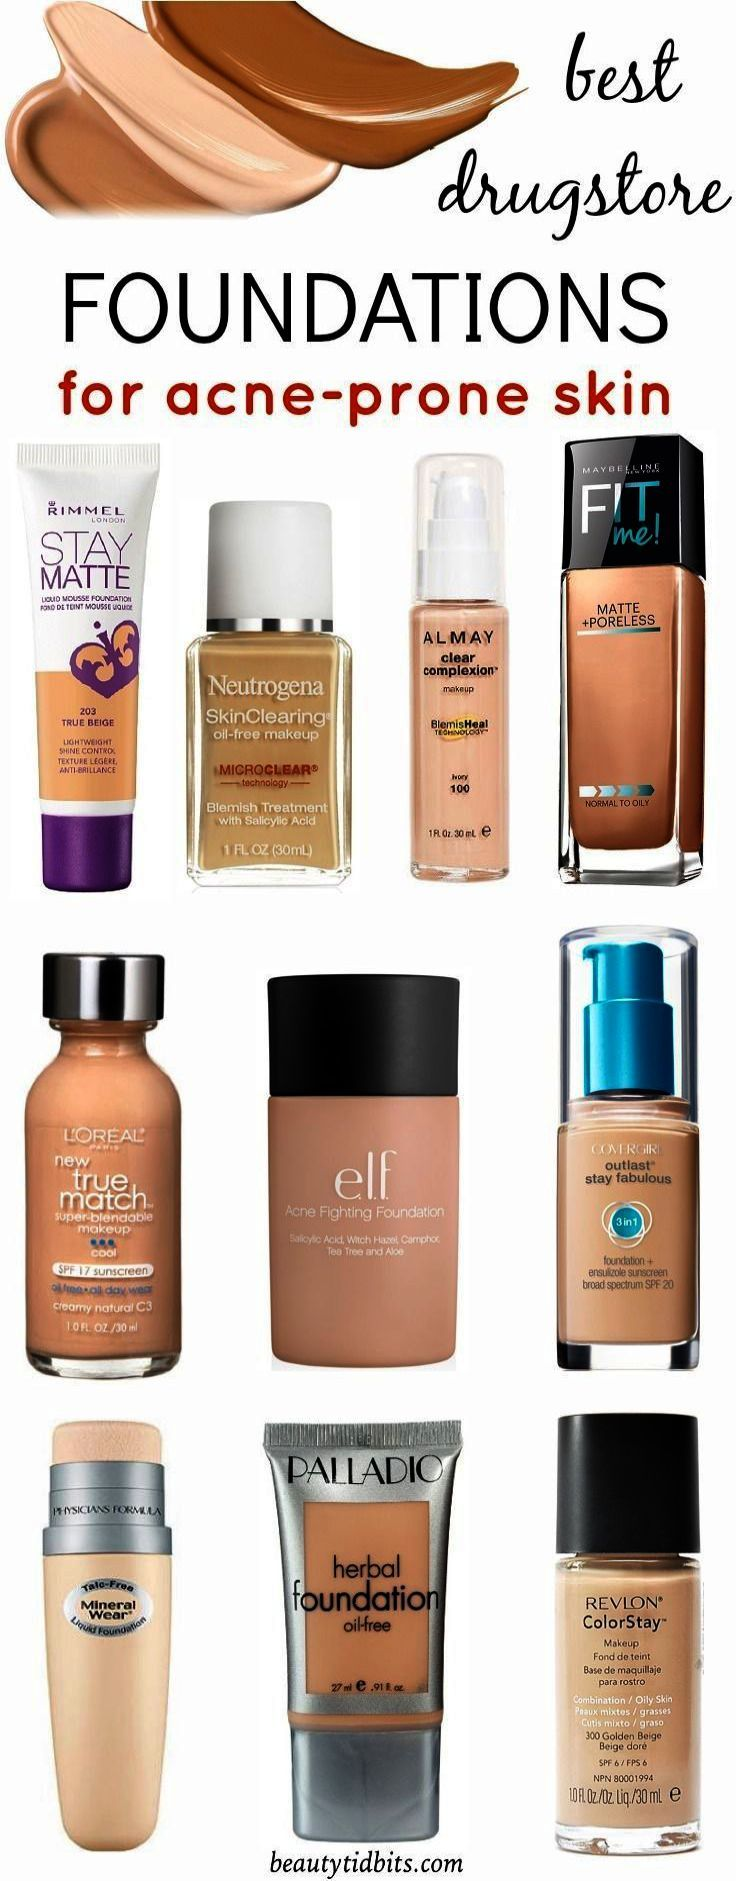 Dupe Makeup Brands One Makeup Geek Brownie Points Though Makeup Revolution Newtrals 3 Hour Best Drugstore Foundation Skin Makeup Foundation Acne Prone Skin